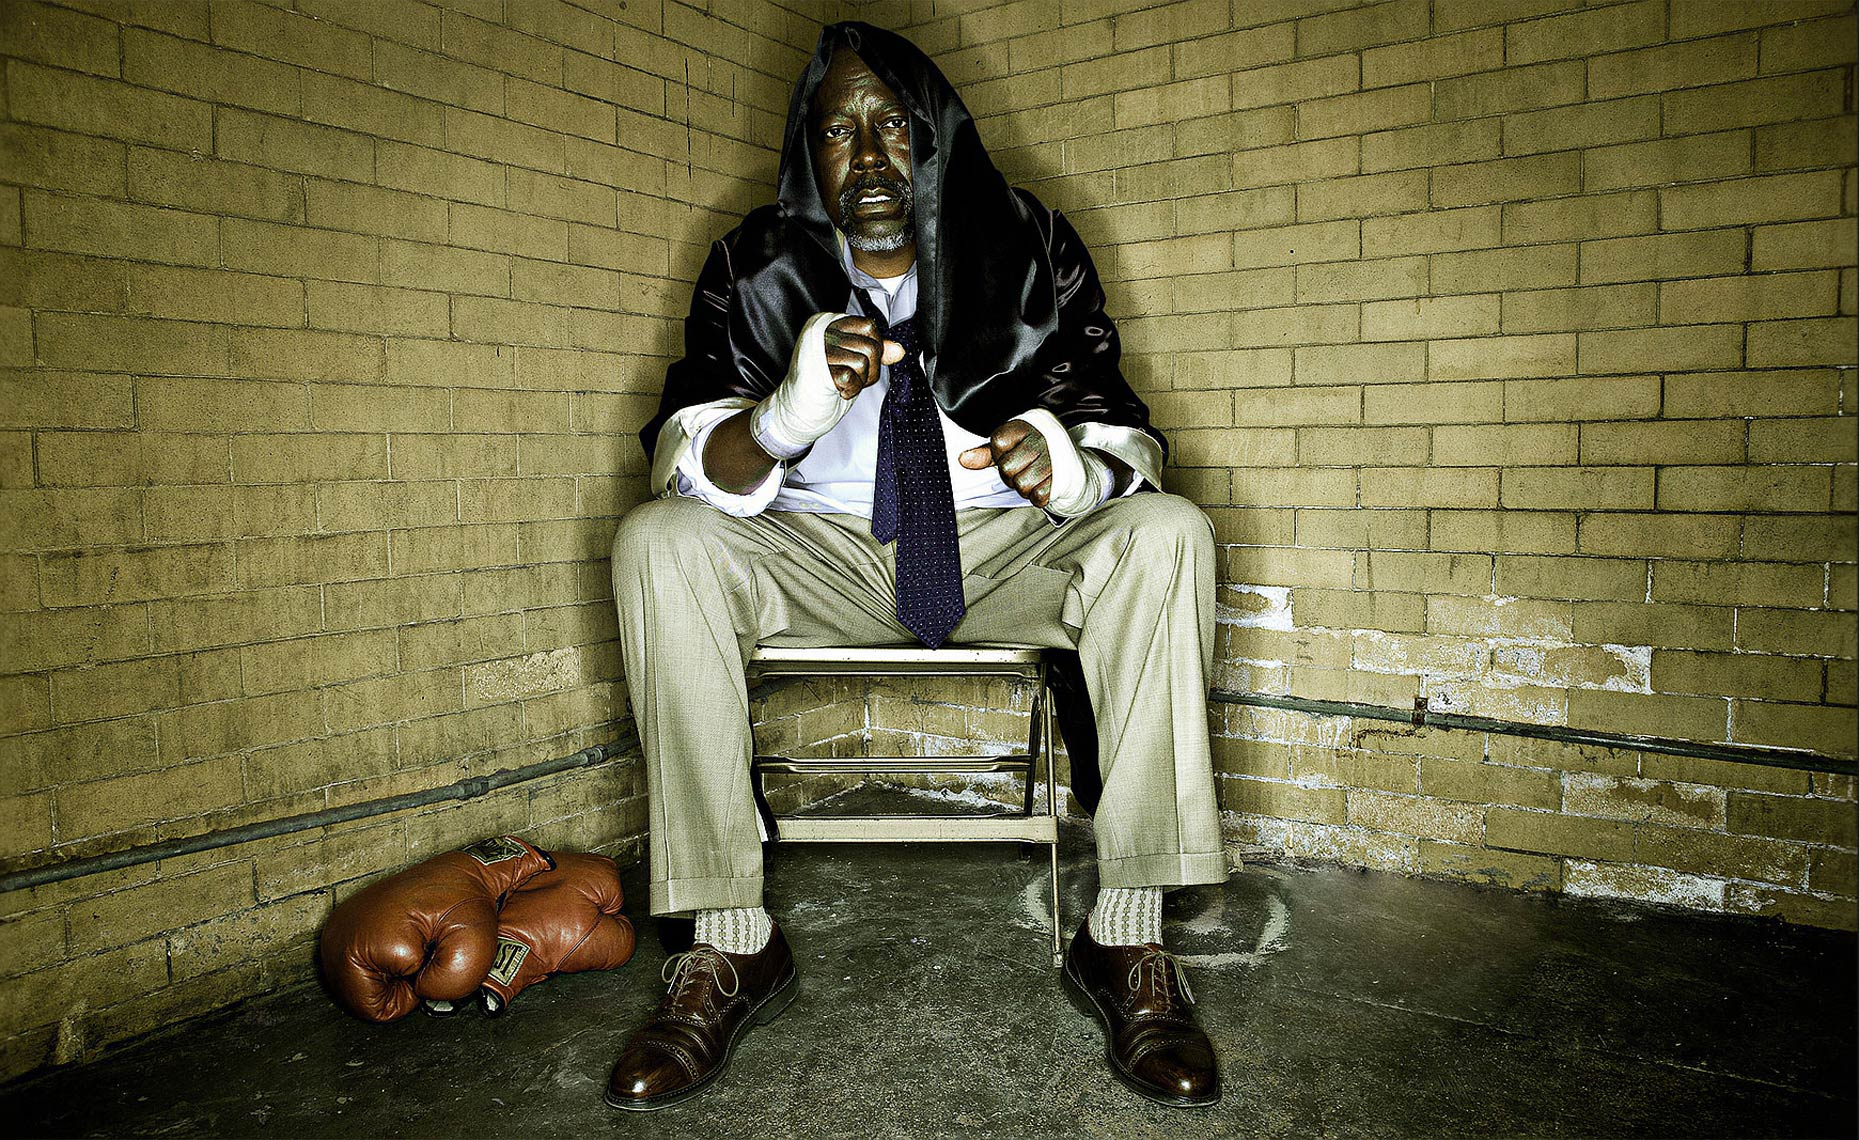 Boxing Bankers_005 | Robert Randall Advertising Photographer, Commercial Photographer, CGI, Portrait, and Lifestyle Photography